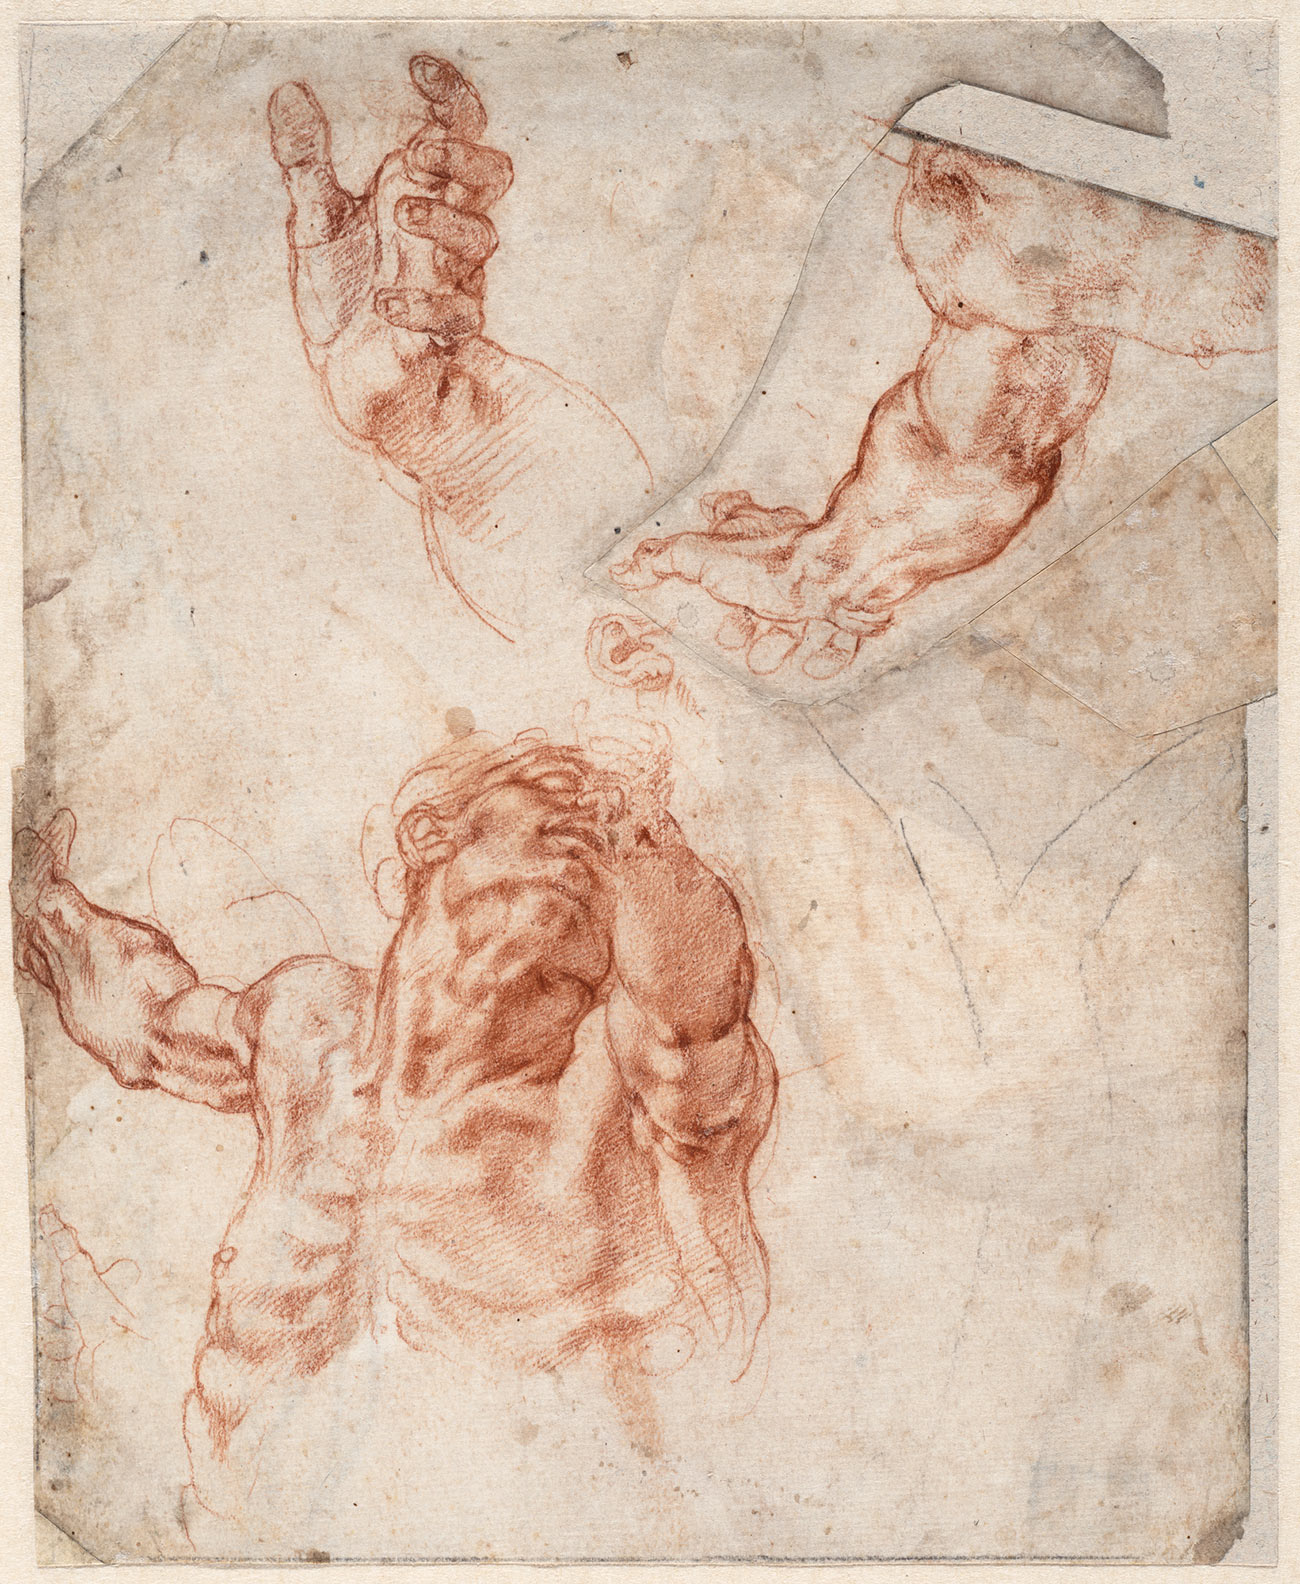 Anatomical sketches of arm, hands, ear, upper body of man